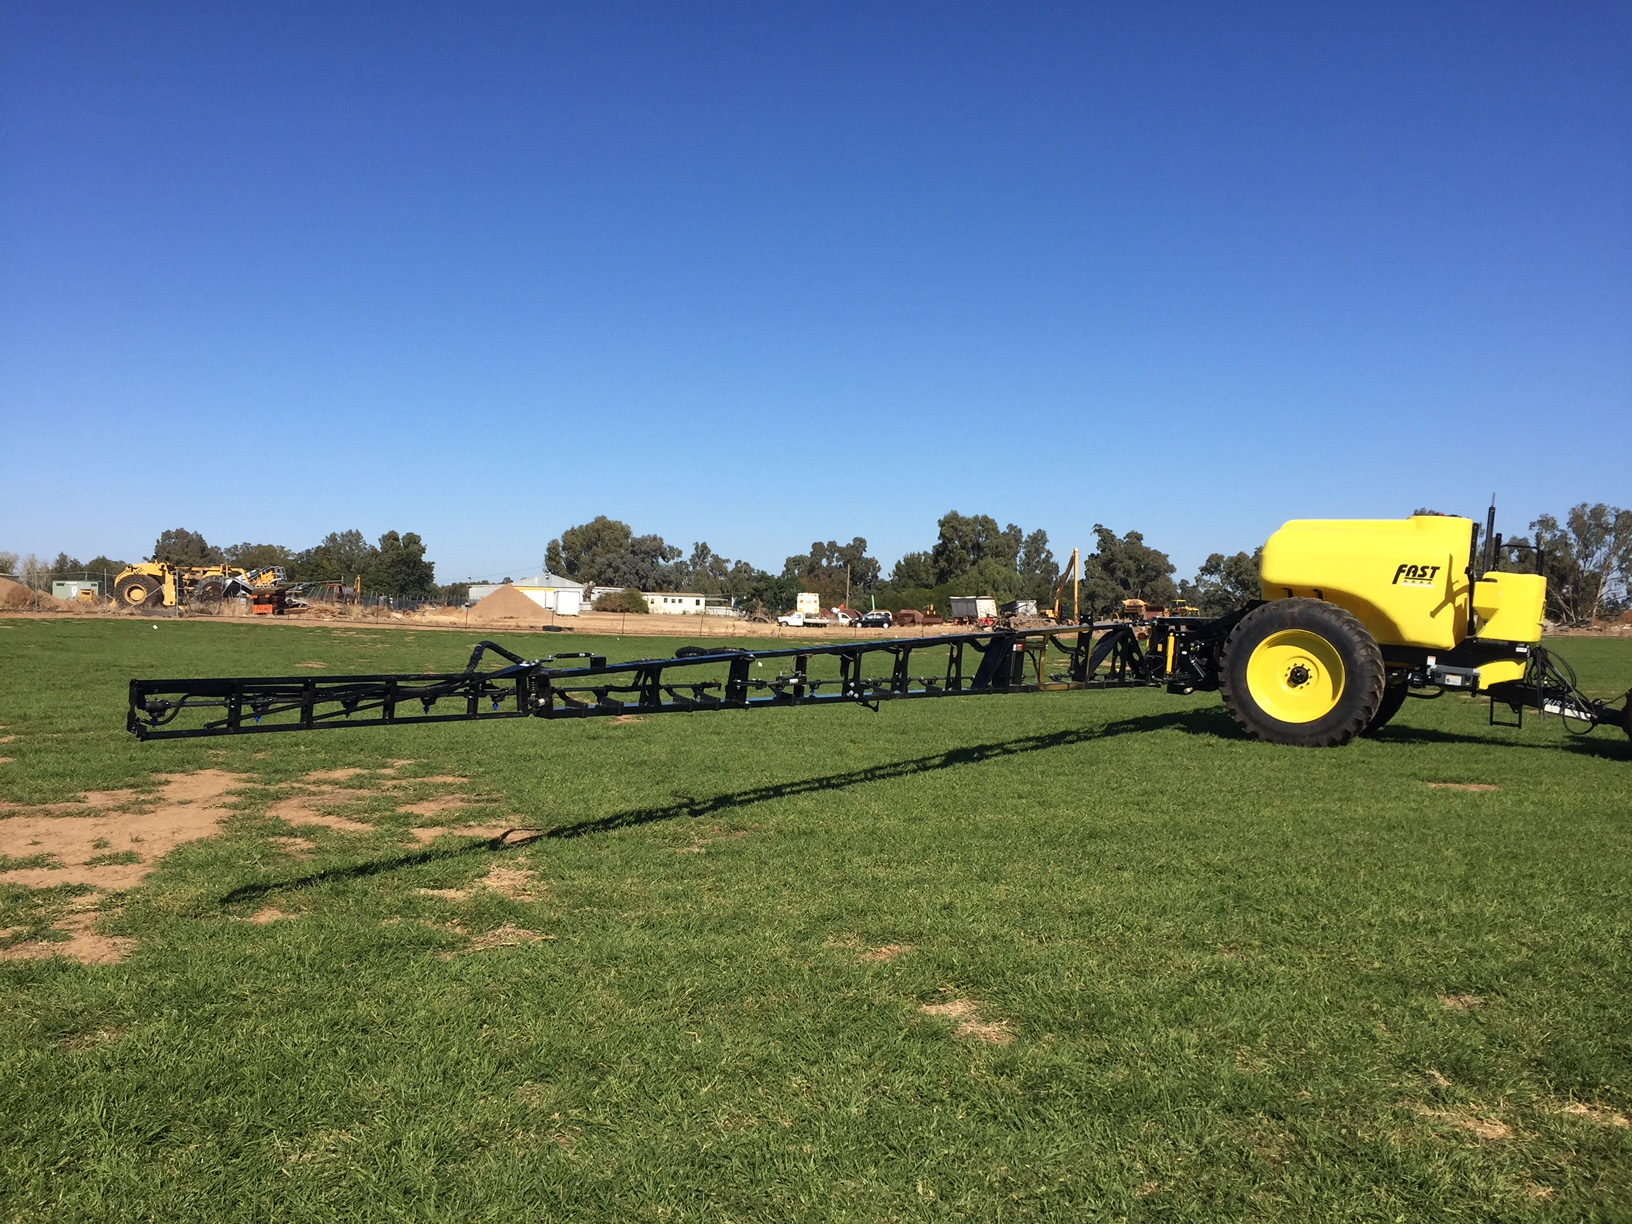 New Fast 5100 litre, 30 Metre boom